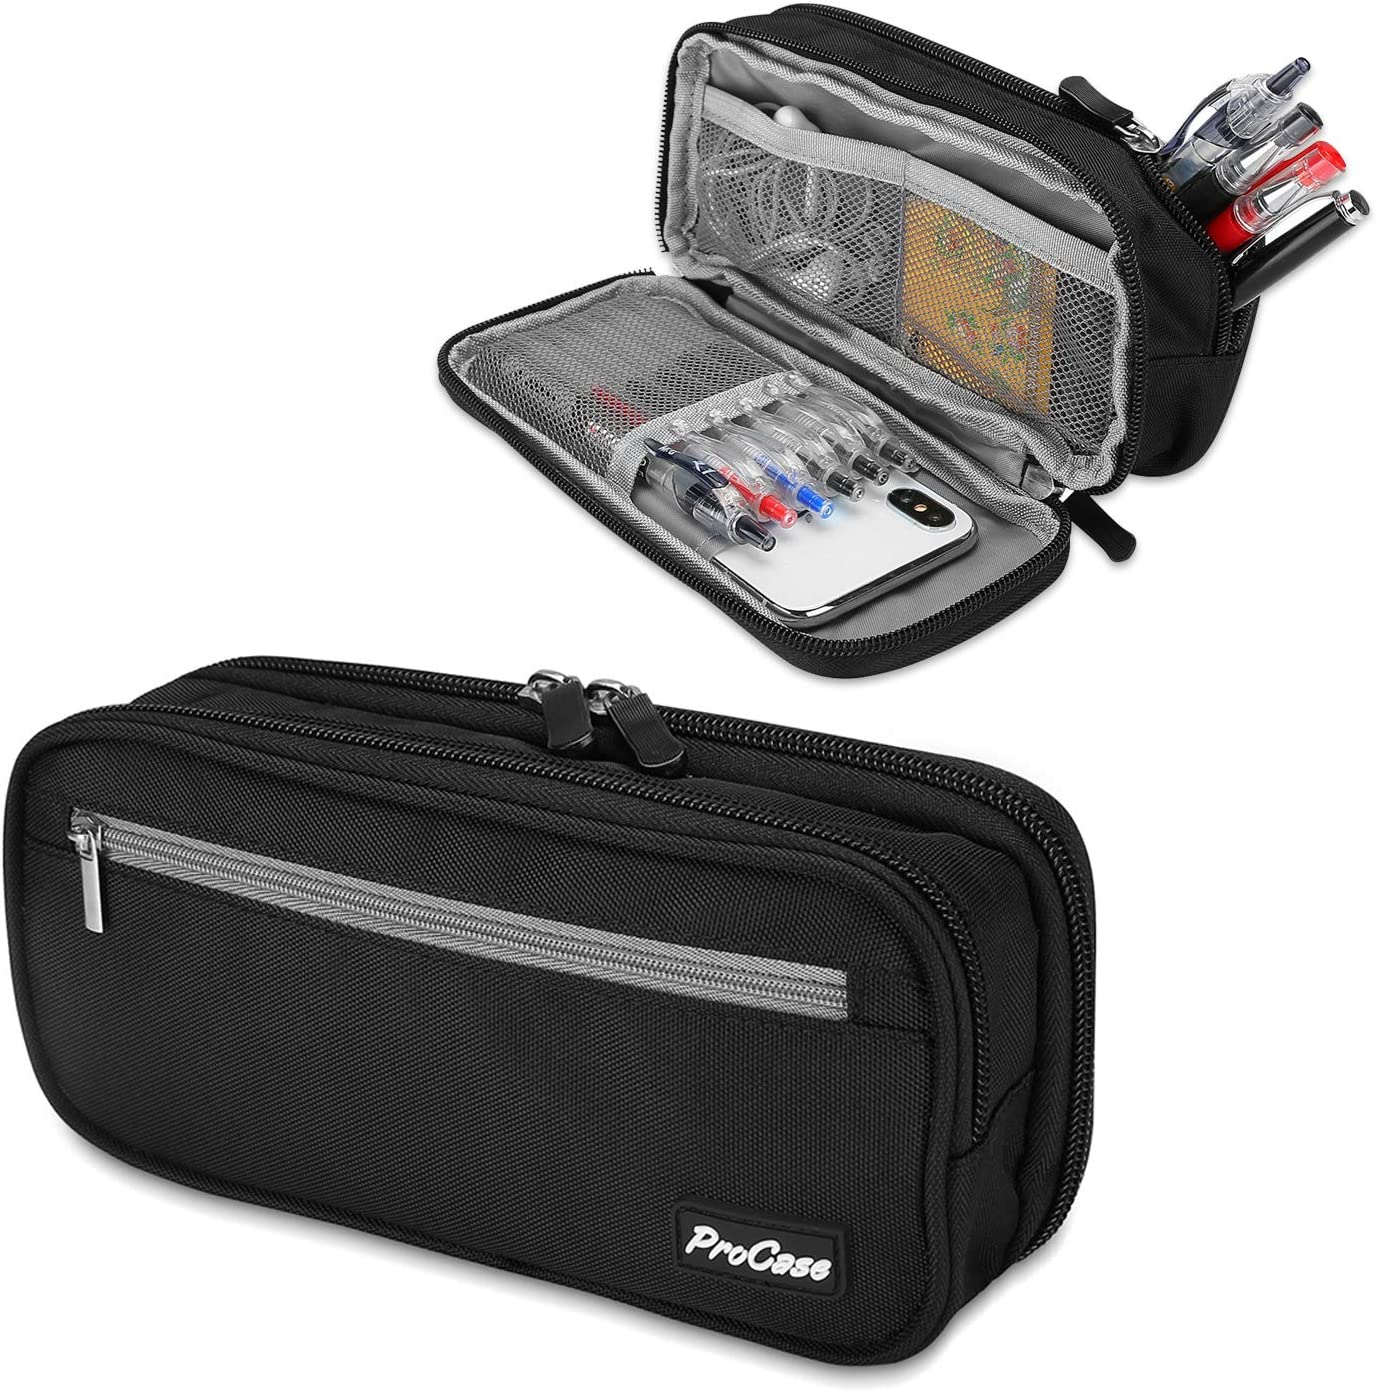 Pencil Case Pen Bag ProCase Layers OFFicial mail order Today's only Capacity Two Pouc Big